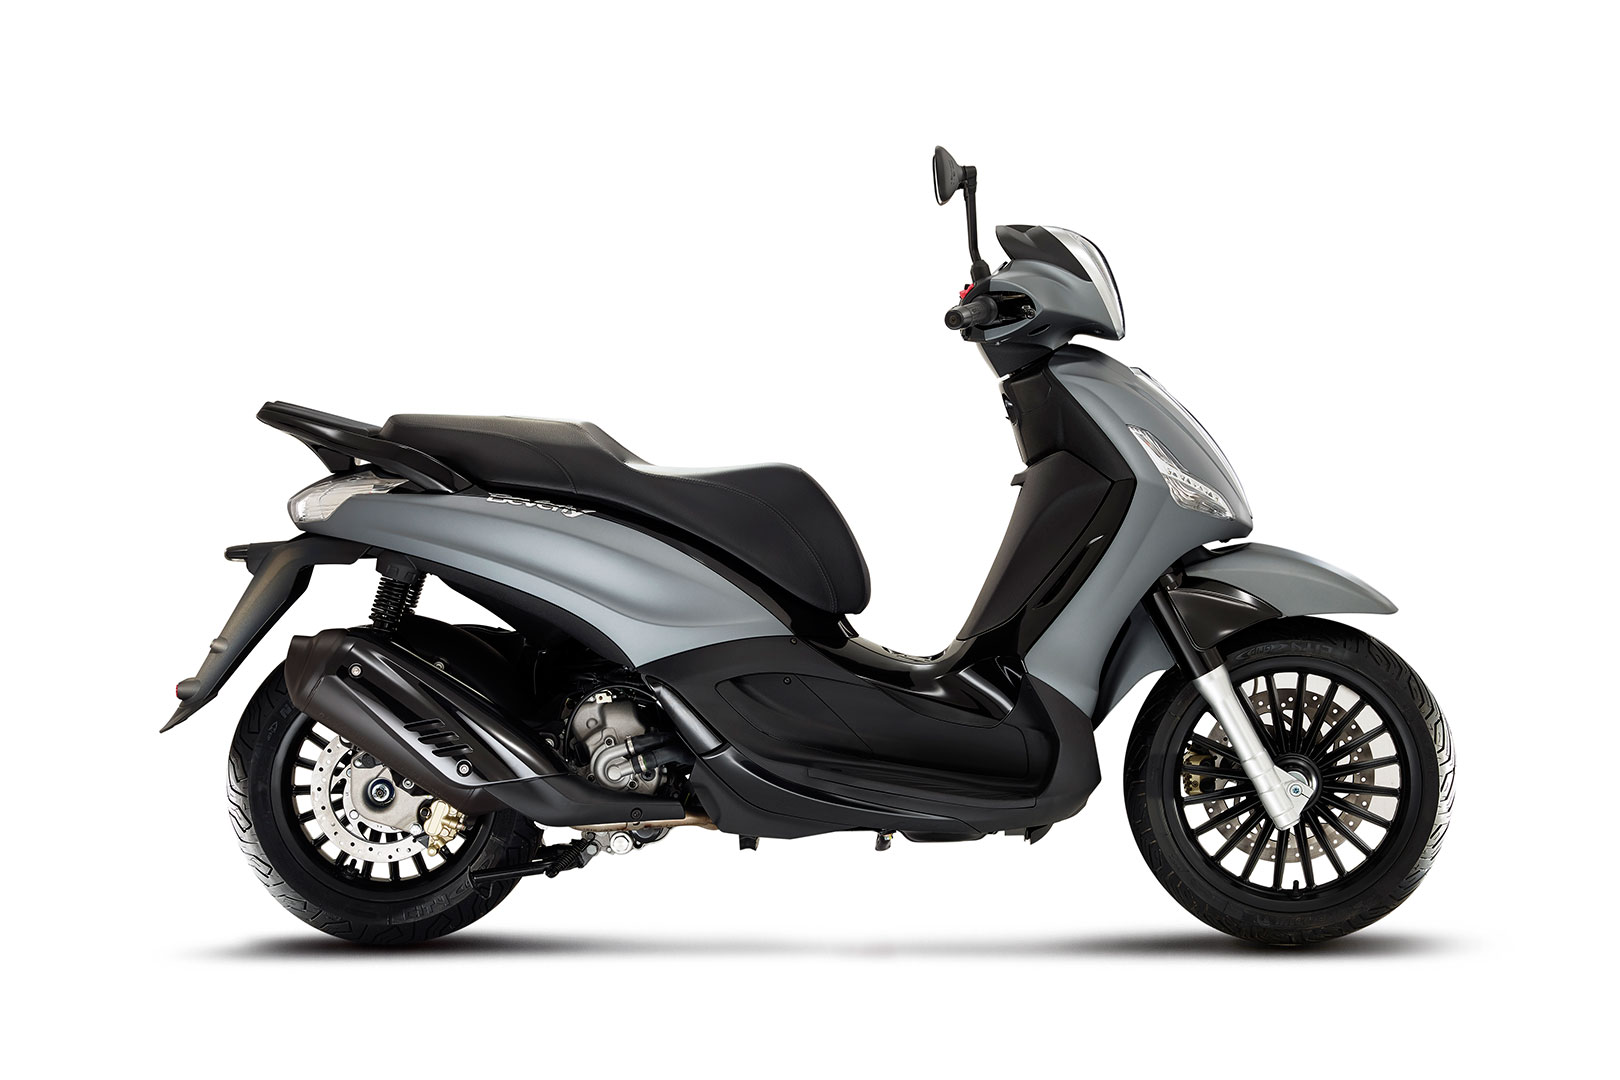 Achat Piaggio Beverly S ABS-ASR 300 cm3 neuf à Nice chez Scoot Center-3